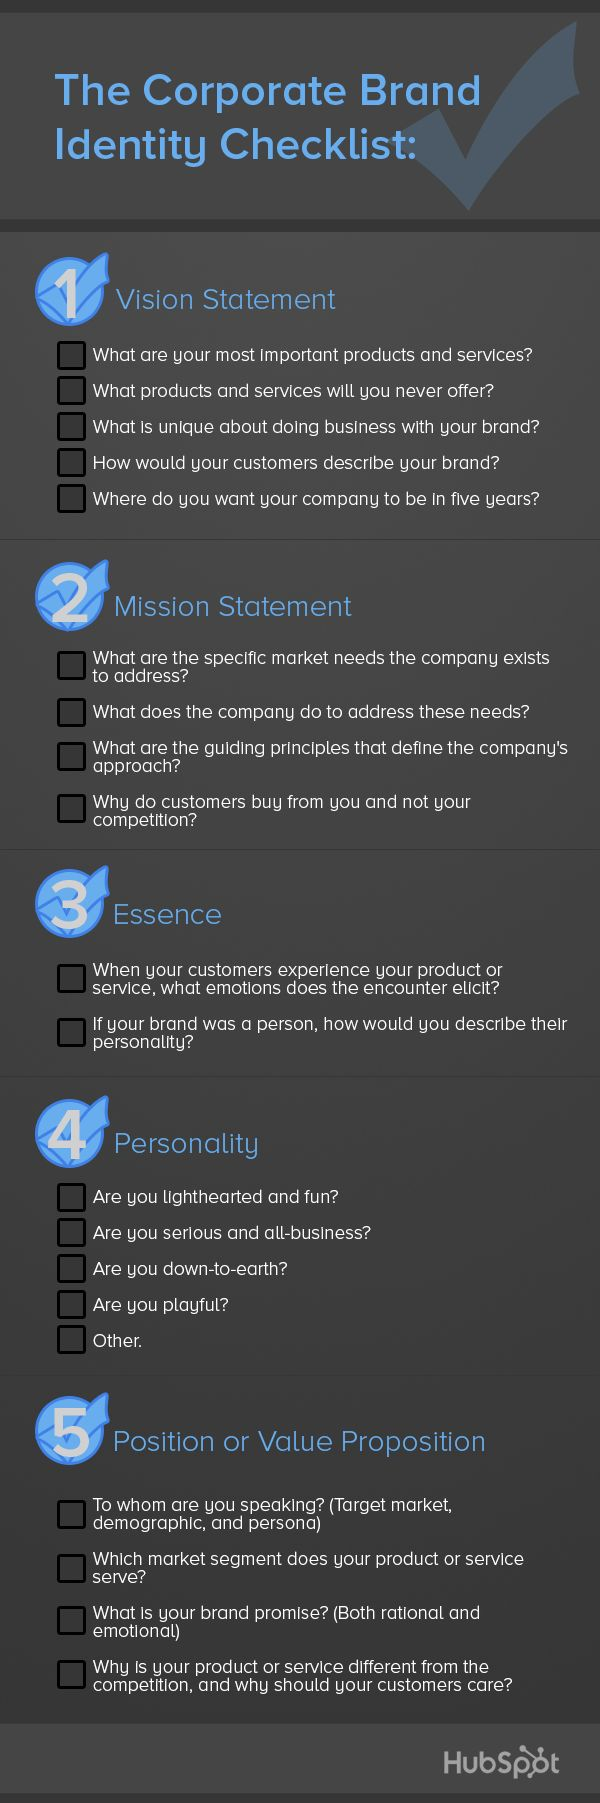 The Corporate Brand Identity Checklist [INFOGRAPHIC]